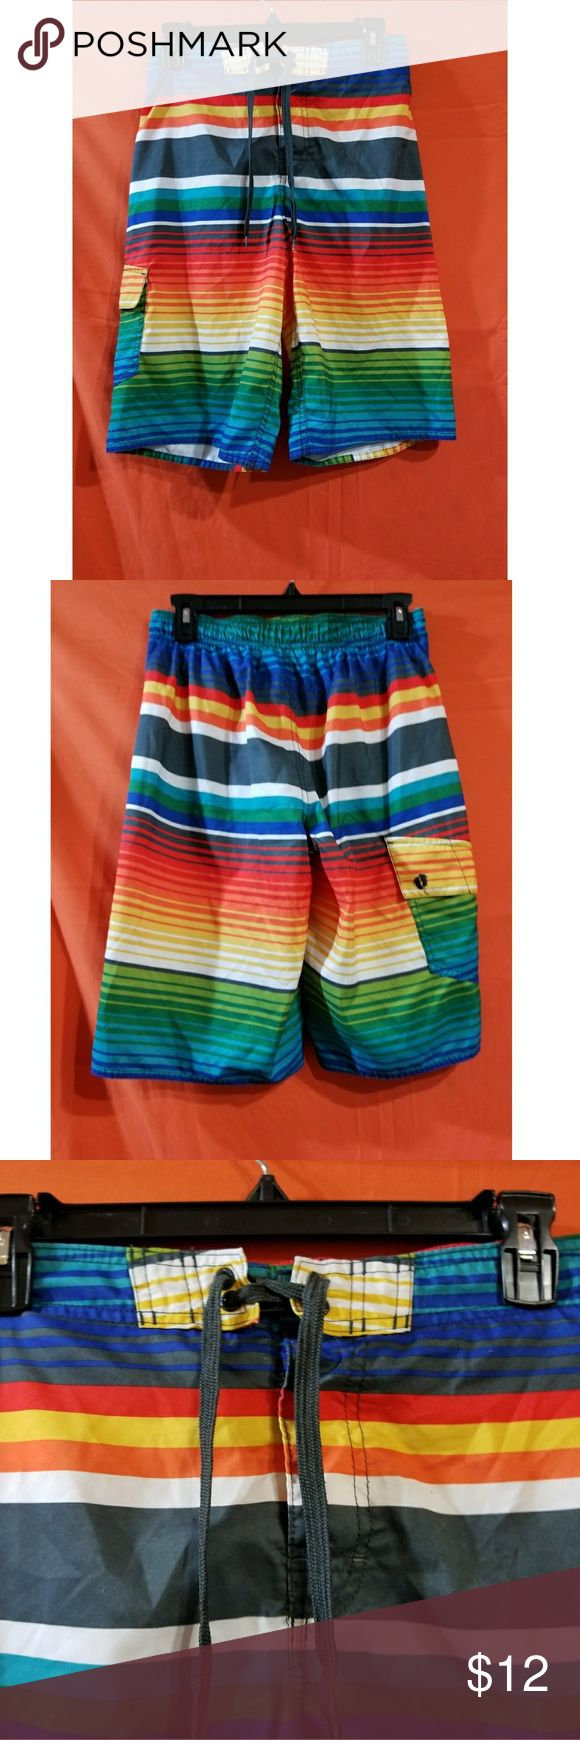 Size Large Colorful Swim Short Hang Ten Hang Ten, excellent used condition, drawstring closure, mesh lining, Velcro pocket #colorful #preloved #swim #swimtrunks hang Ten Swim Swim Trunks